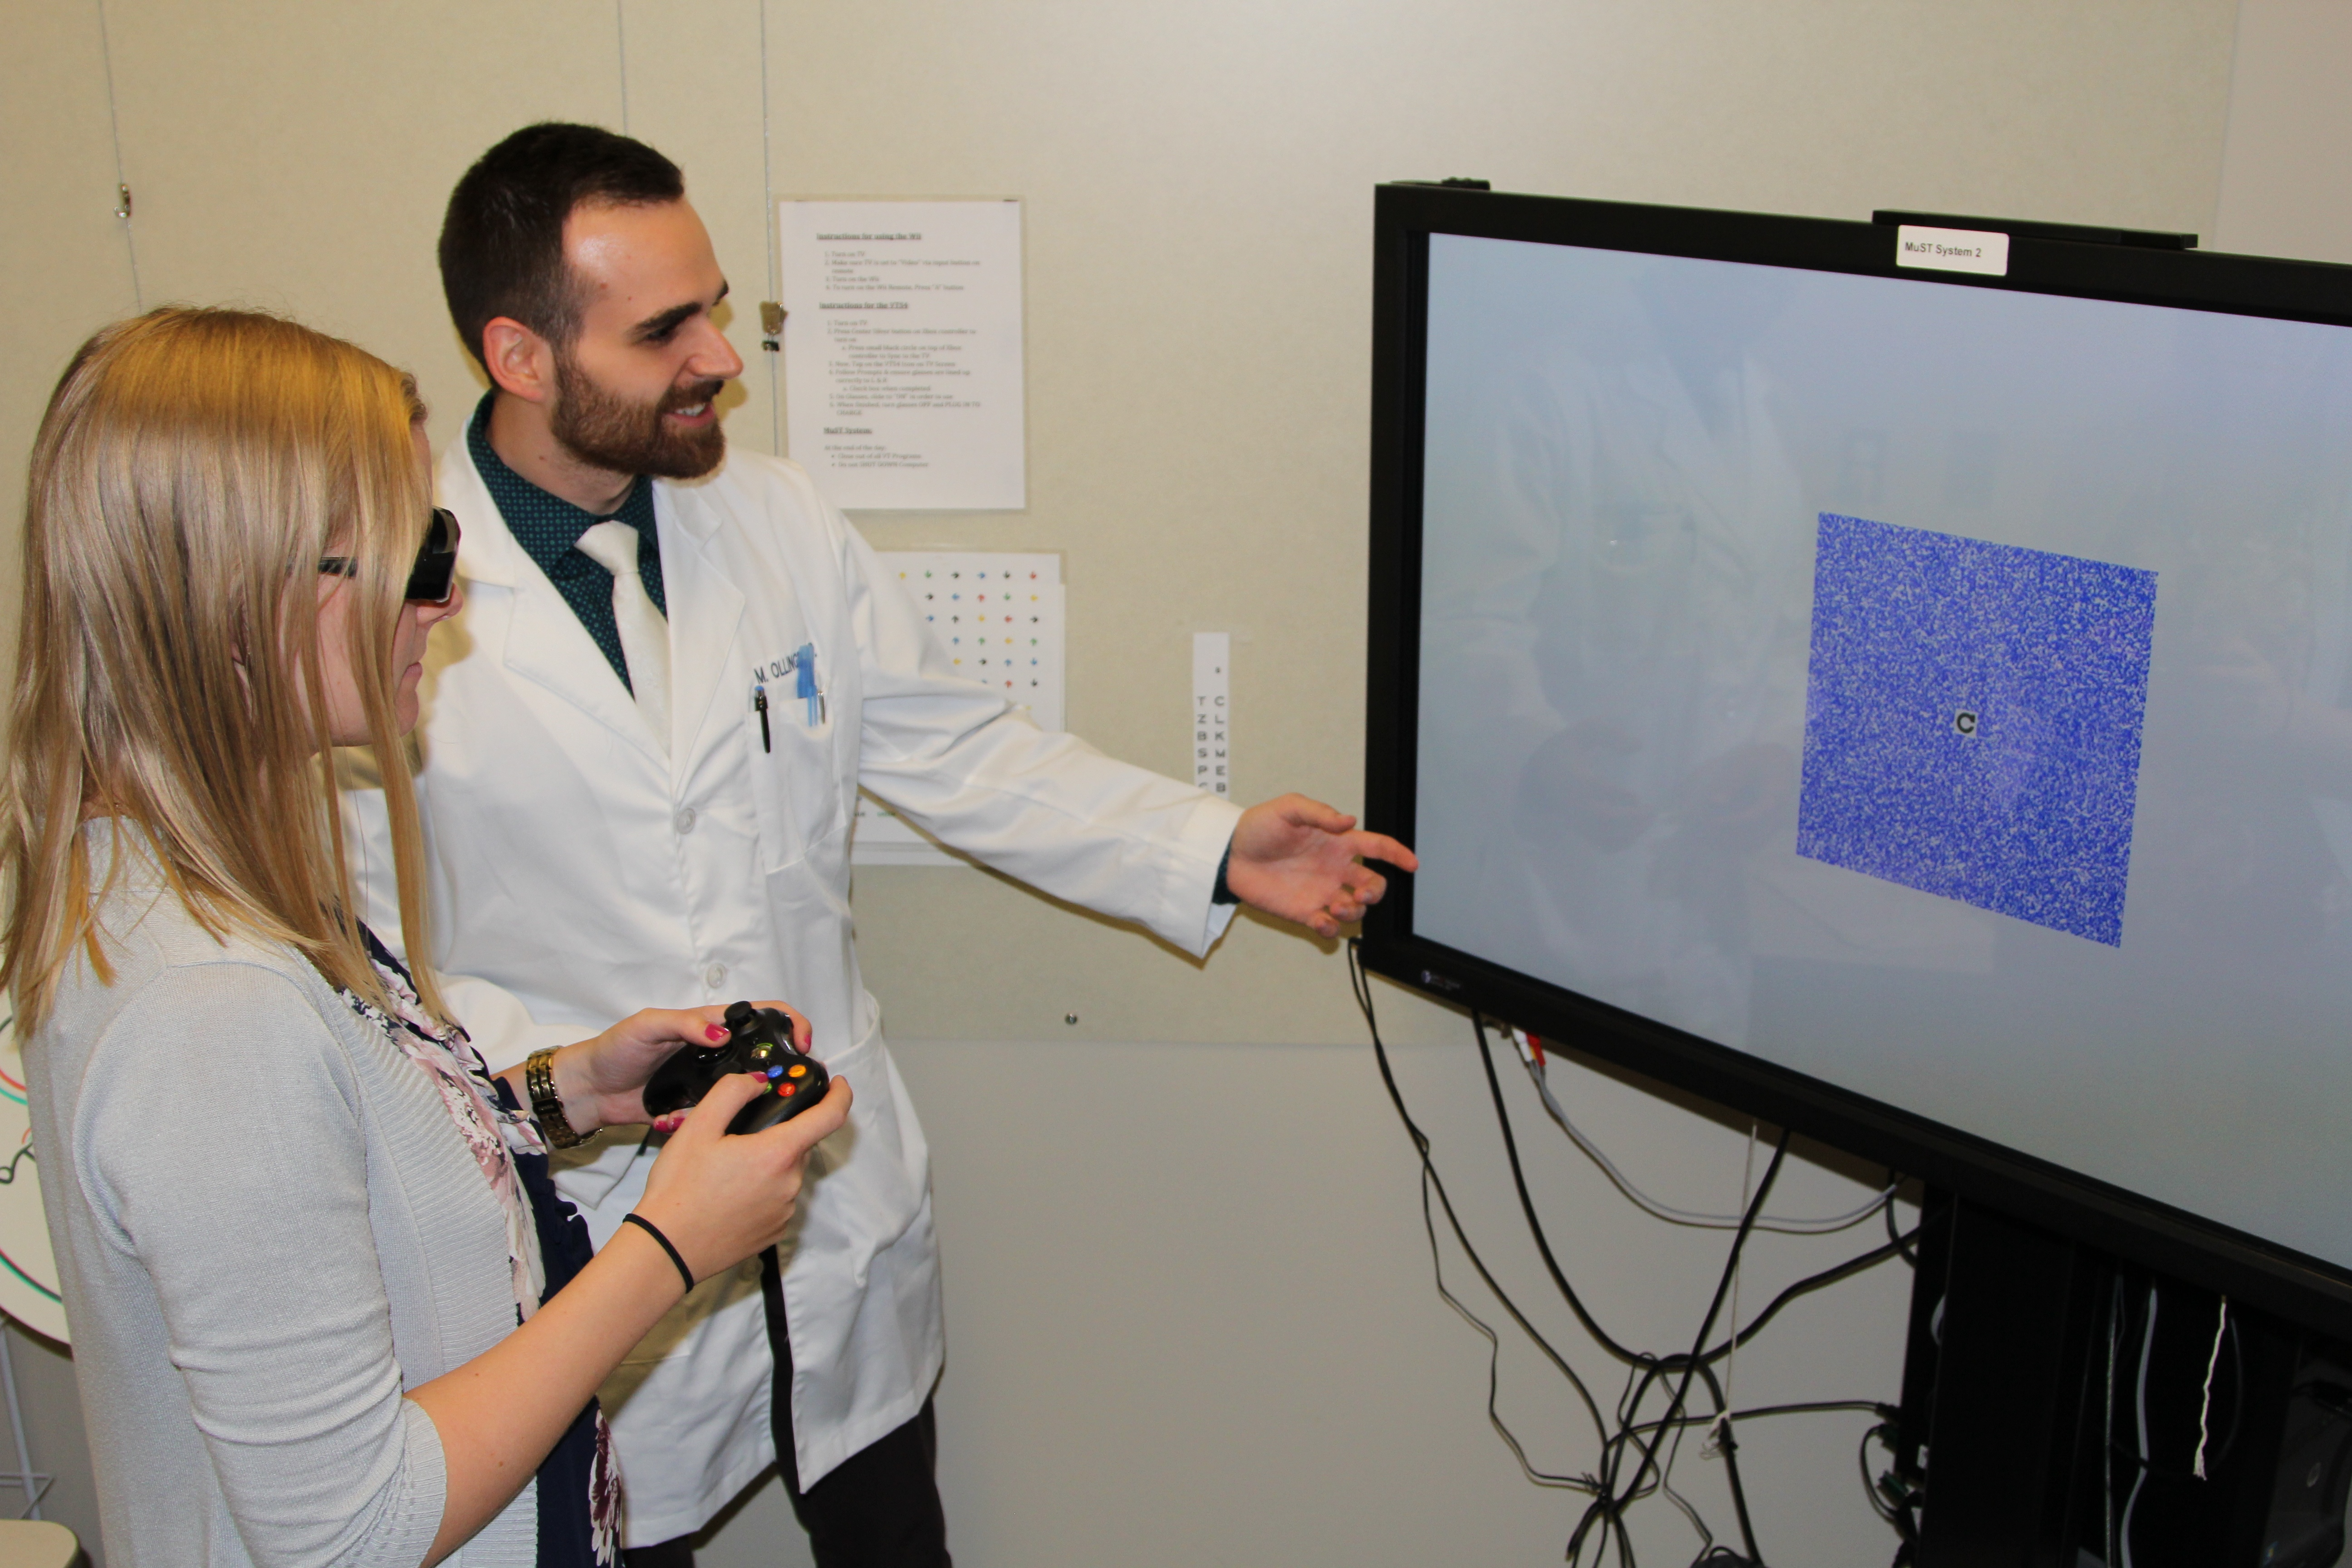 Morgan Ollinger, OD, right, is a current Michigan College of Optometry Pediatrics and Binocular Vision resident.